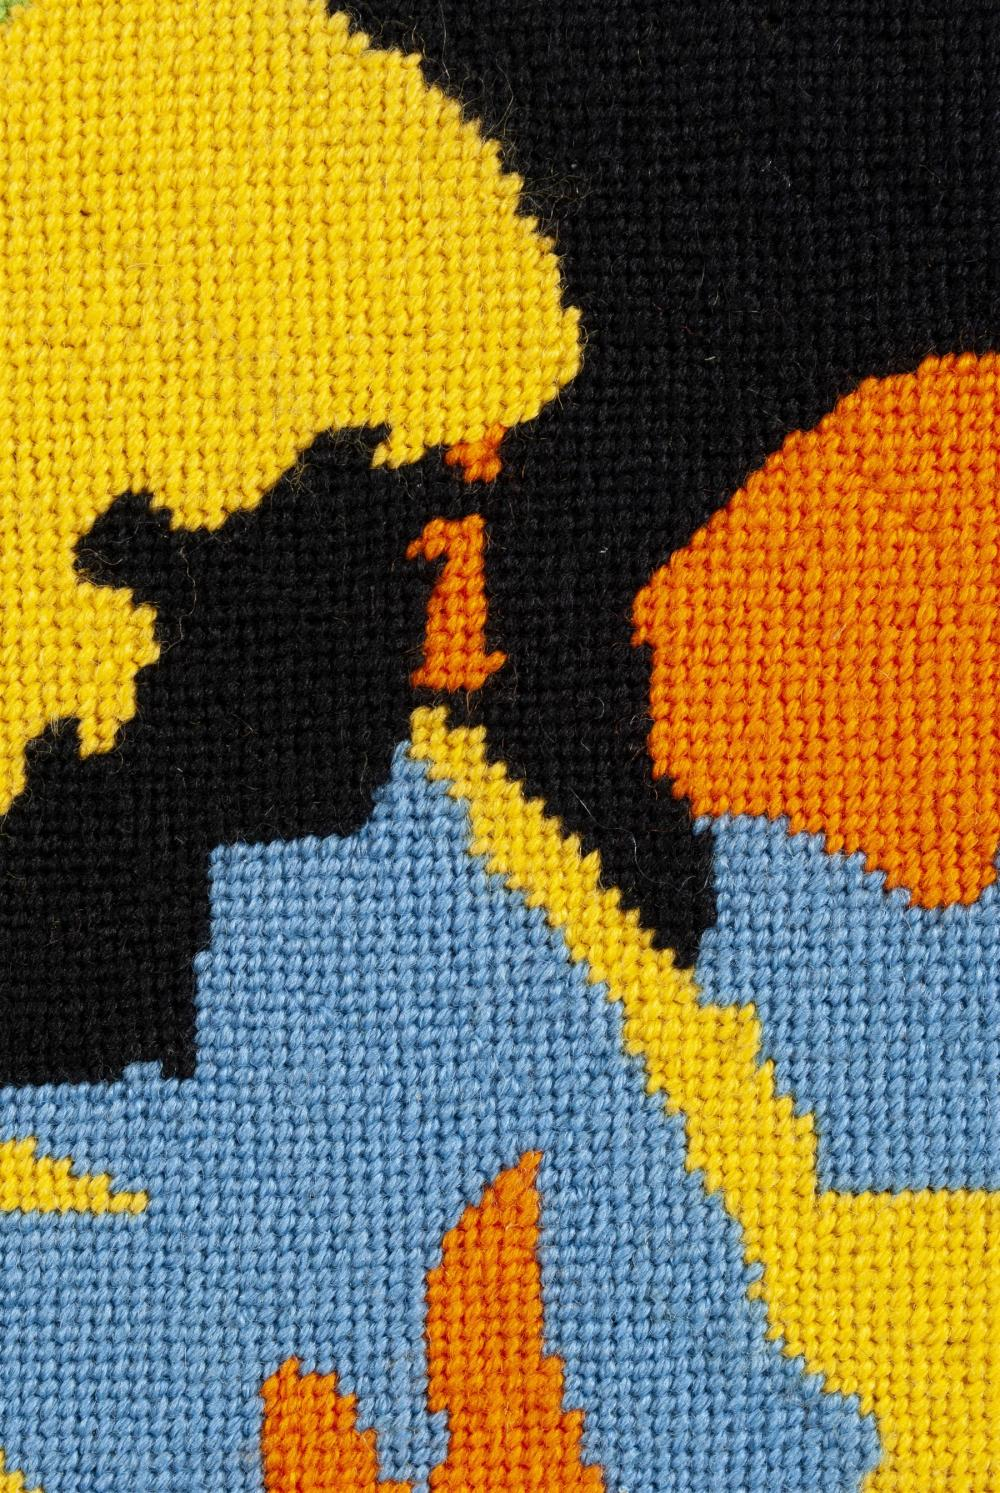 AMERICAN PSYCHEDELIC NEEDLEPOINT